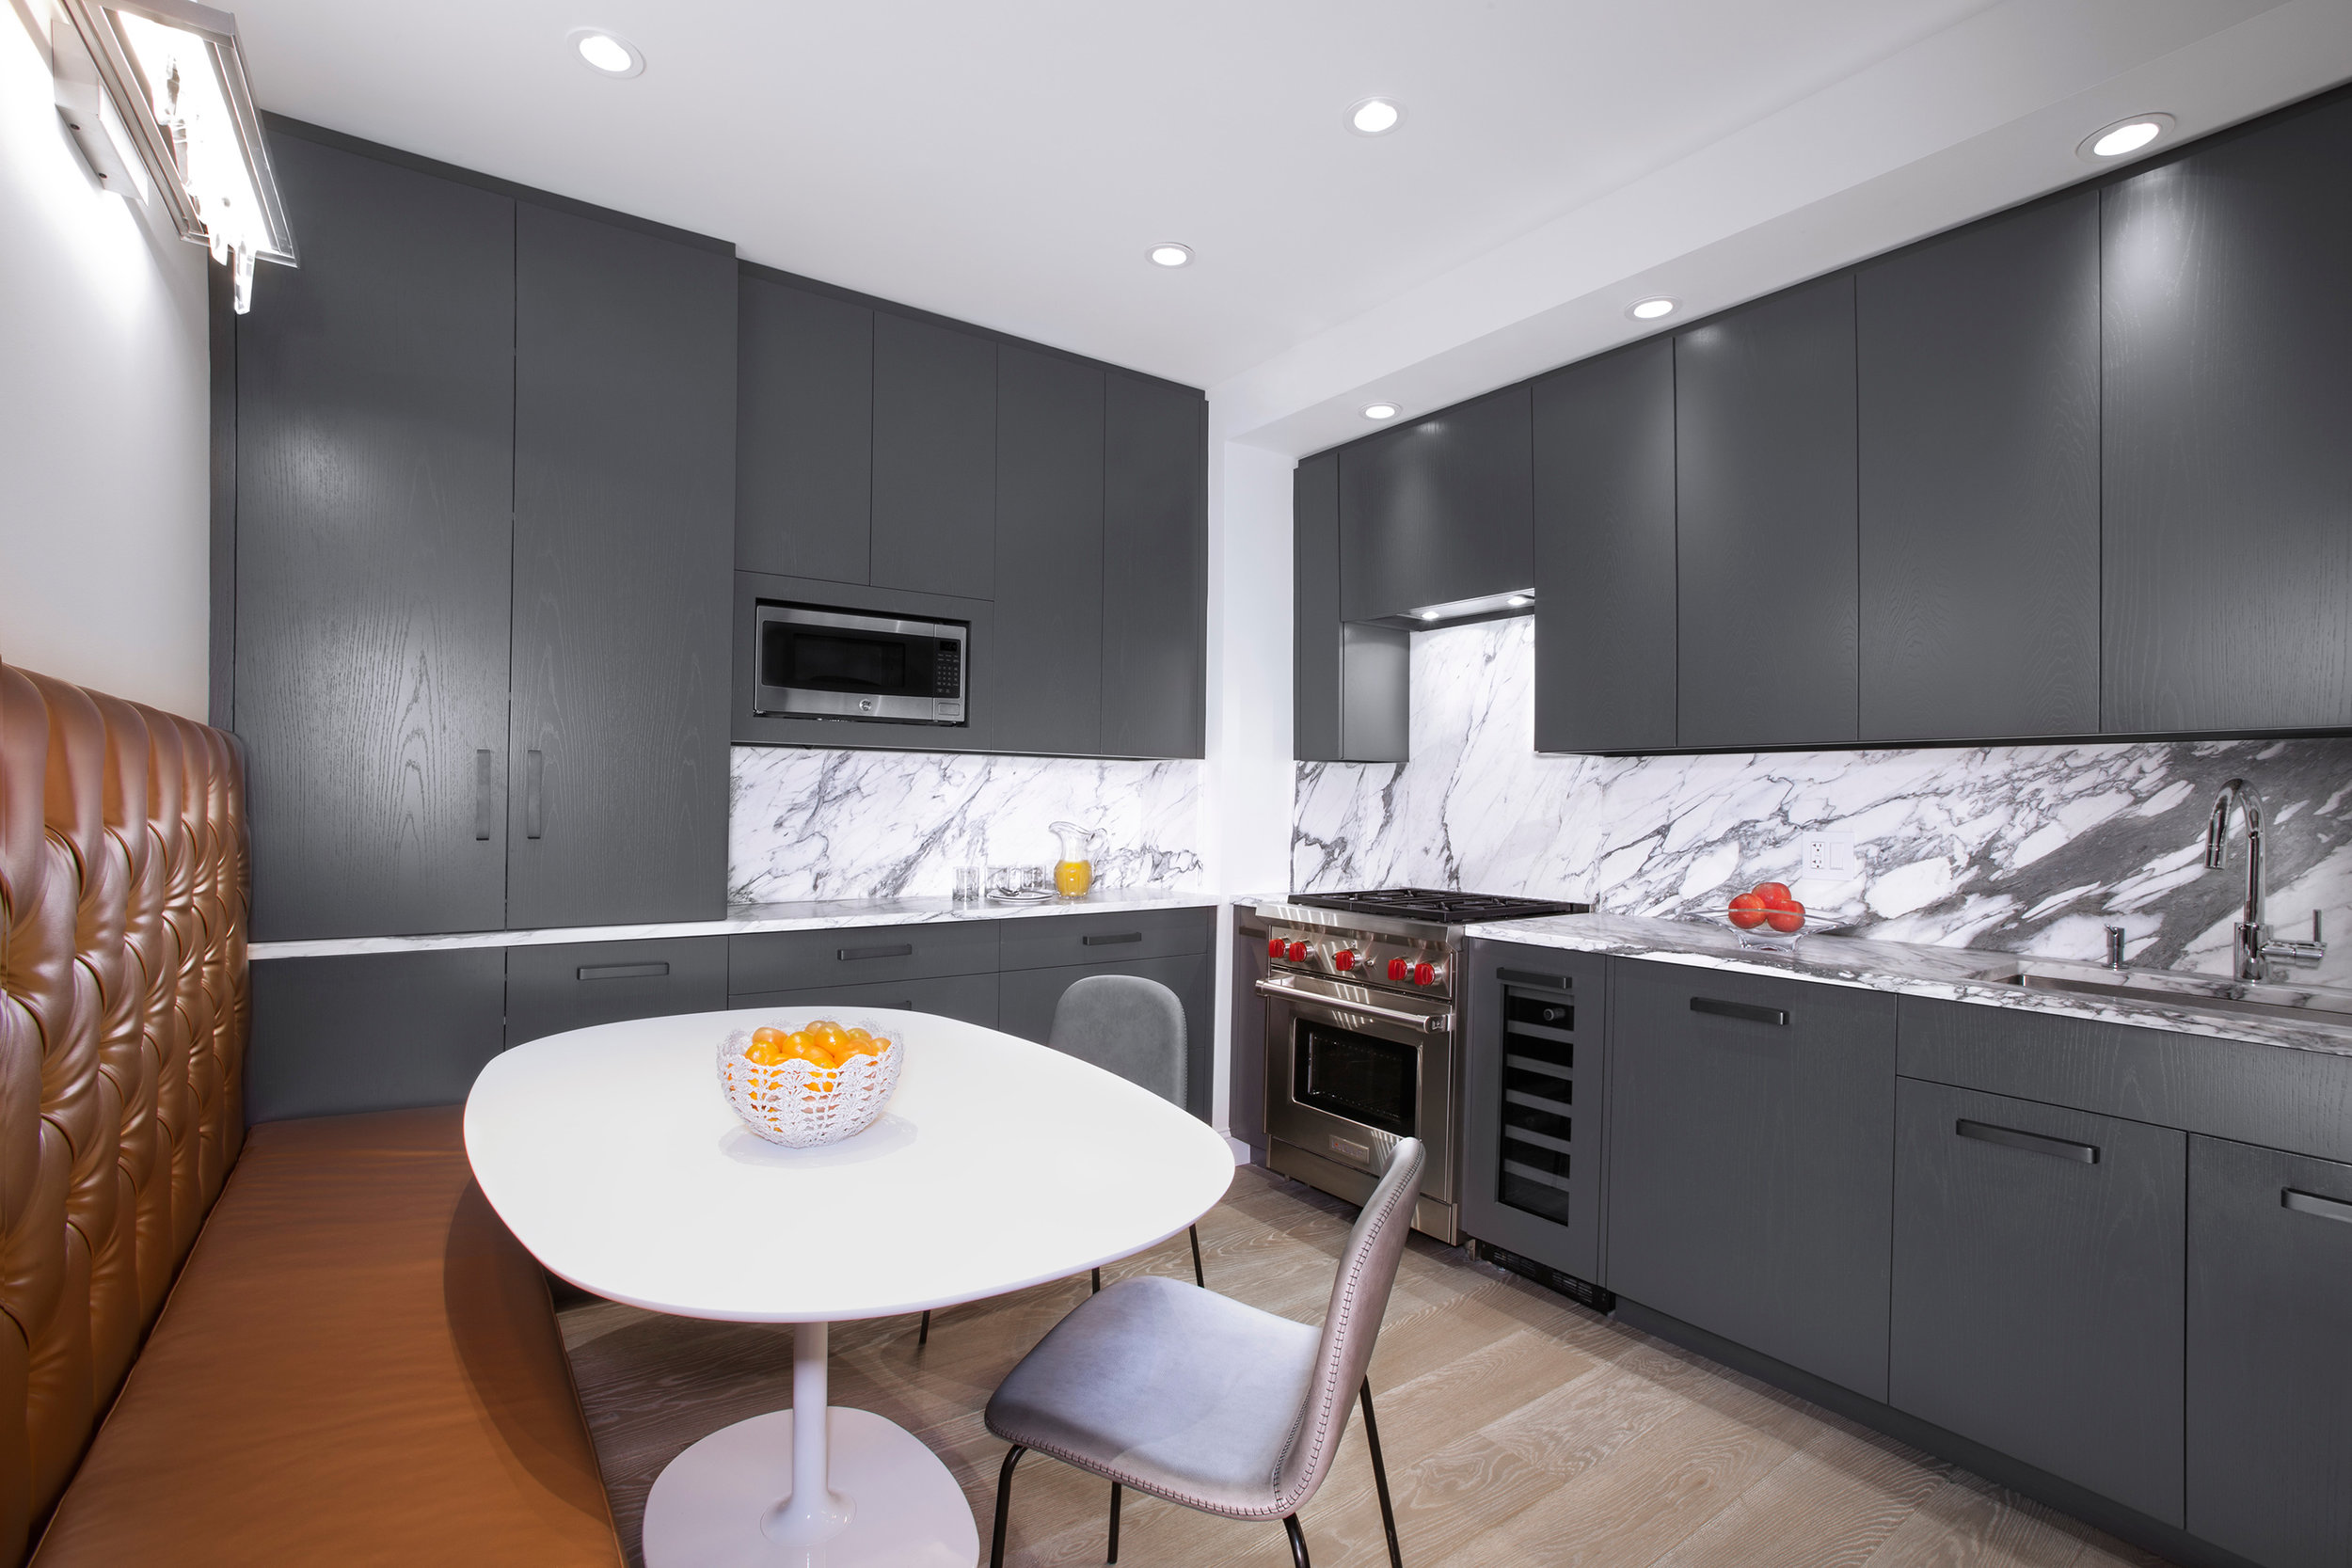 interior Design Photography in New York By Jonathan R. Bevkerman Design By Evelyn Benatar 7th Ave_apt Kitchen 04.jpg